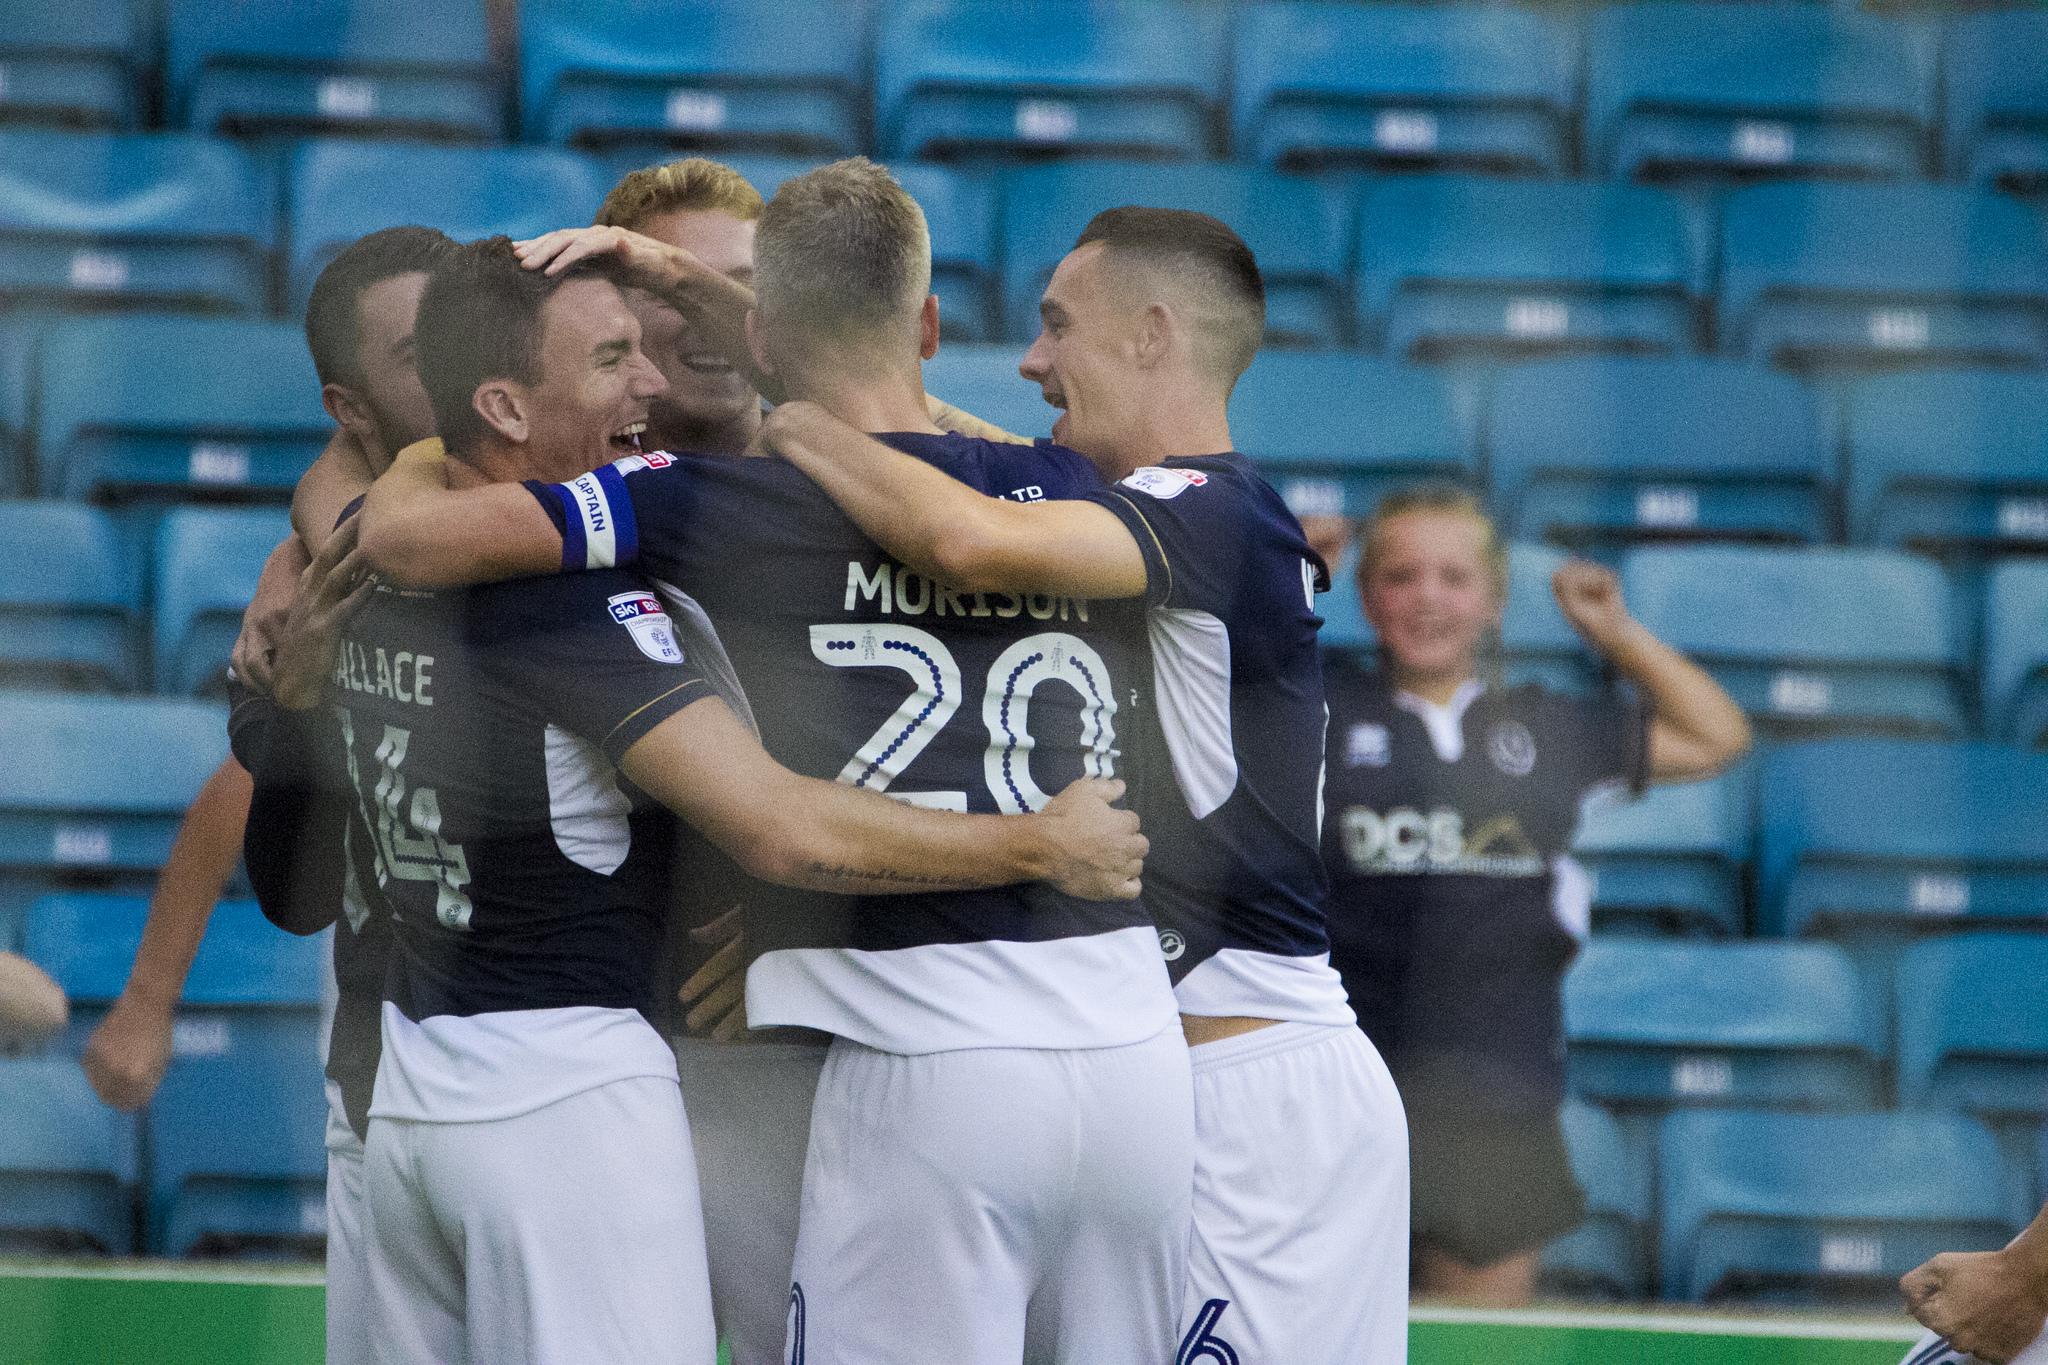 Millwall players celebrate | Picture: Benjamin Peters Photography